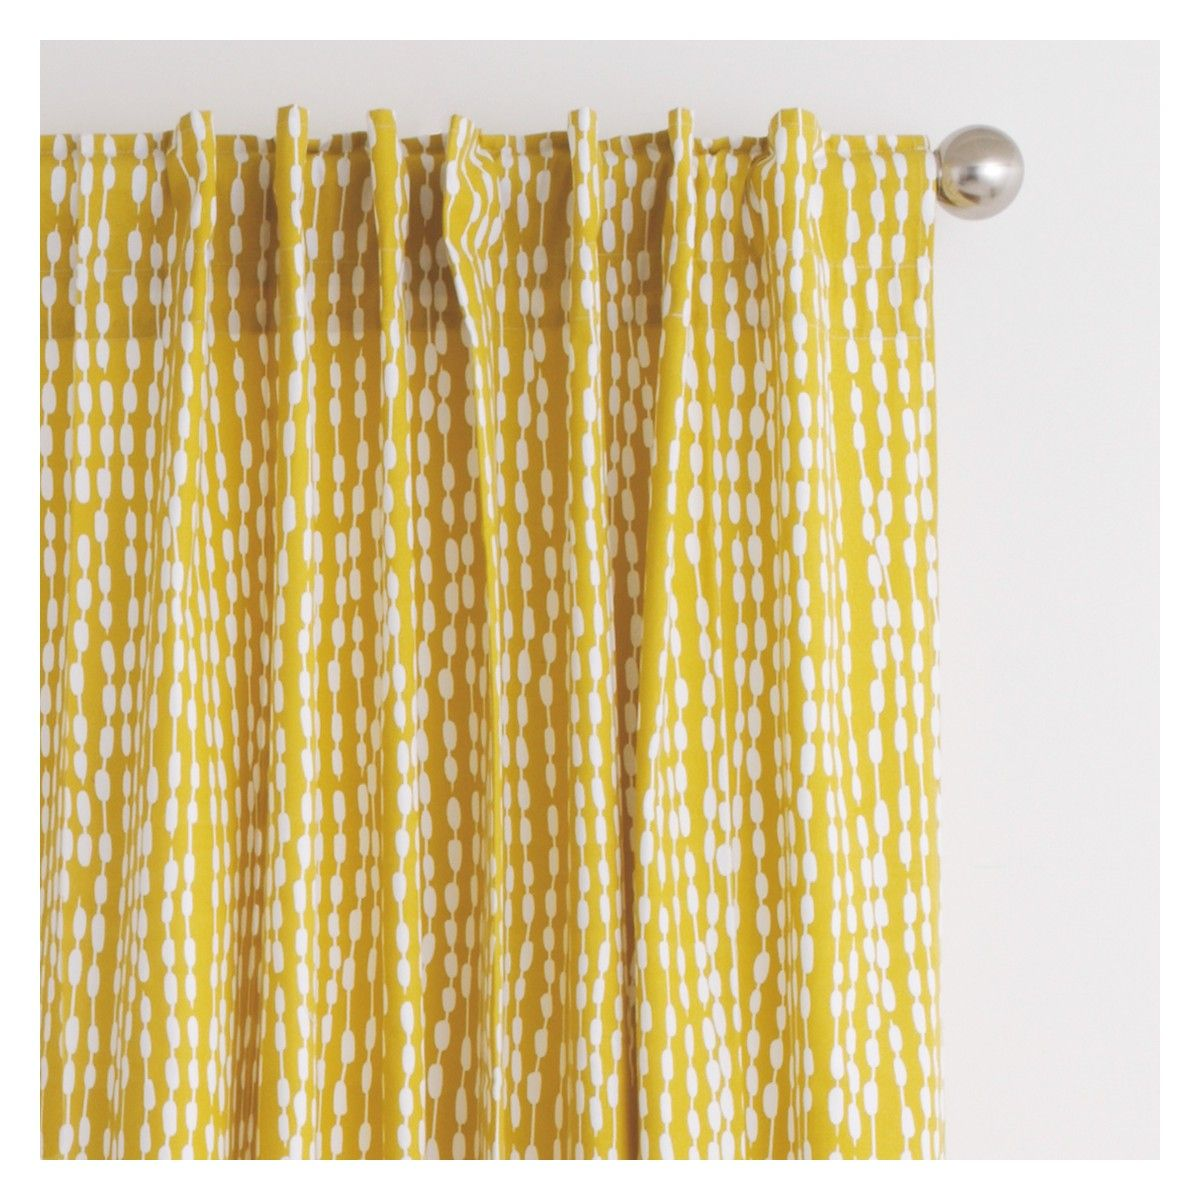 Trene pair of mustard yellow patterned curtains 145 x 280cm